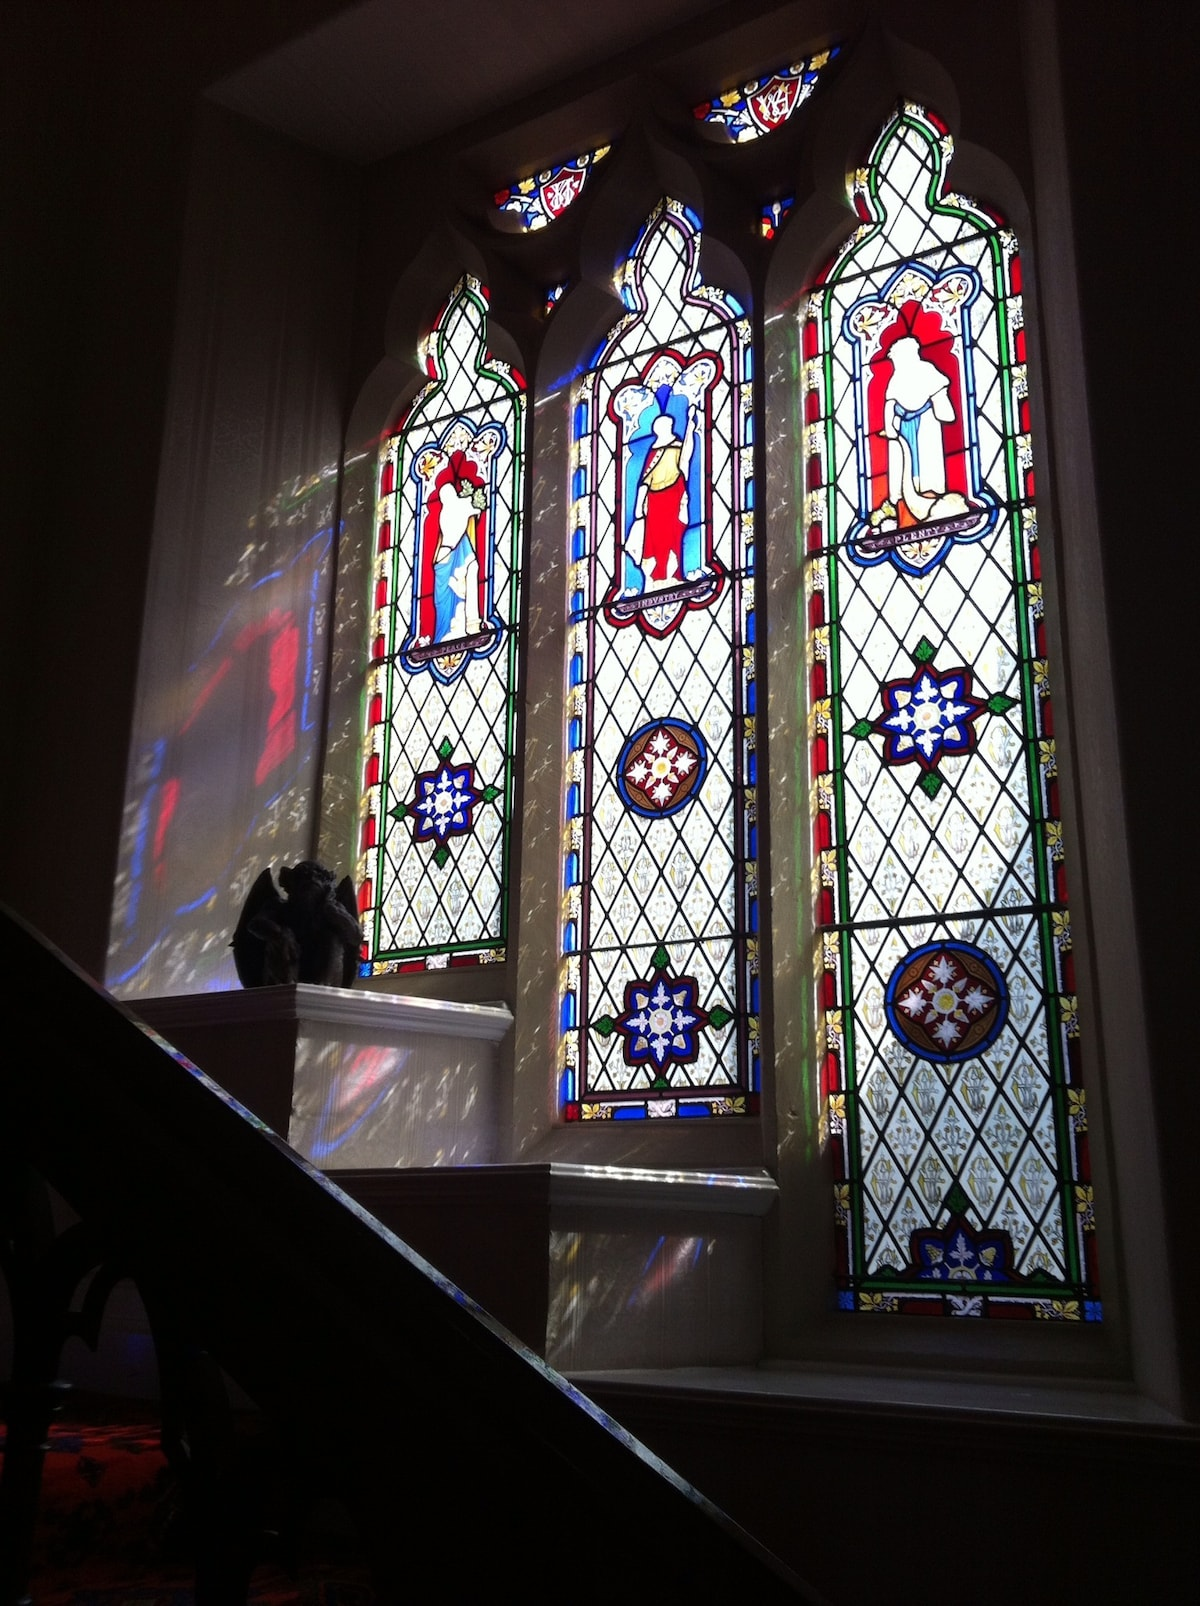 A priceless collection of six stained glass windows, depicting Peace, Love, Charity, Industry,  Hope and Faith, grace the grand staircase leading up to the second floor.  Look closely and you can see the initials WC, William Carver the original owner of t